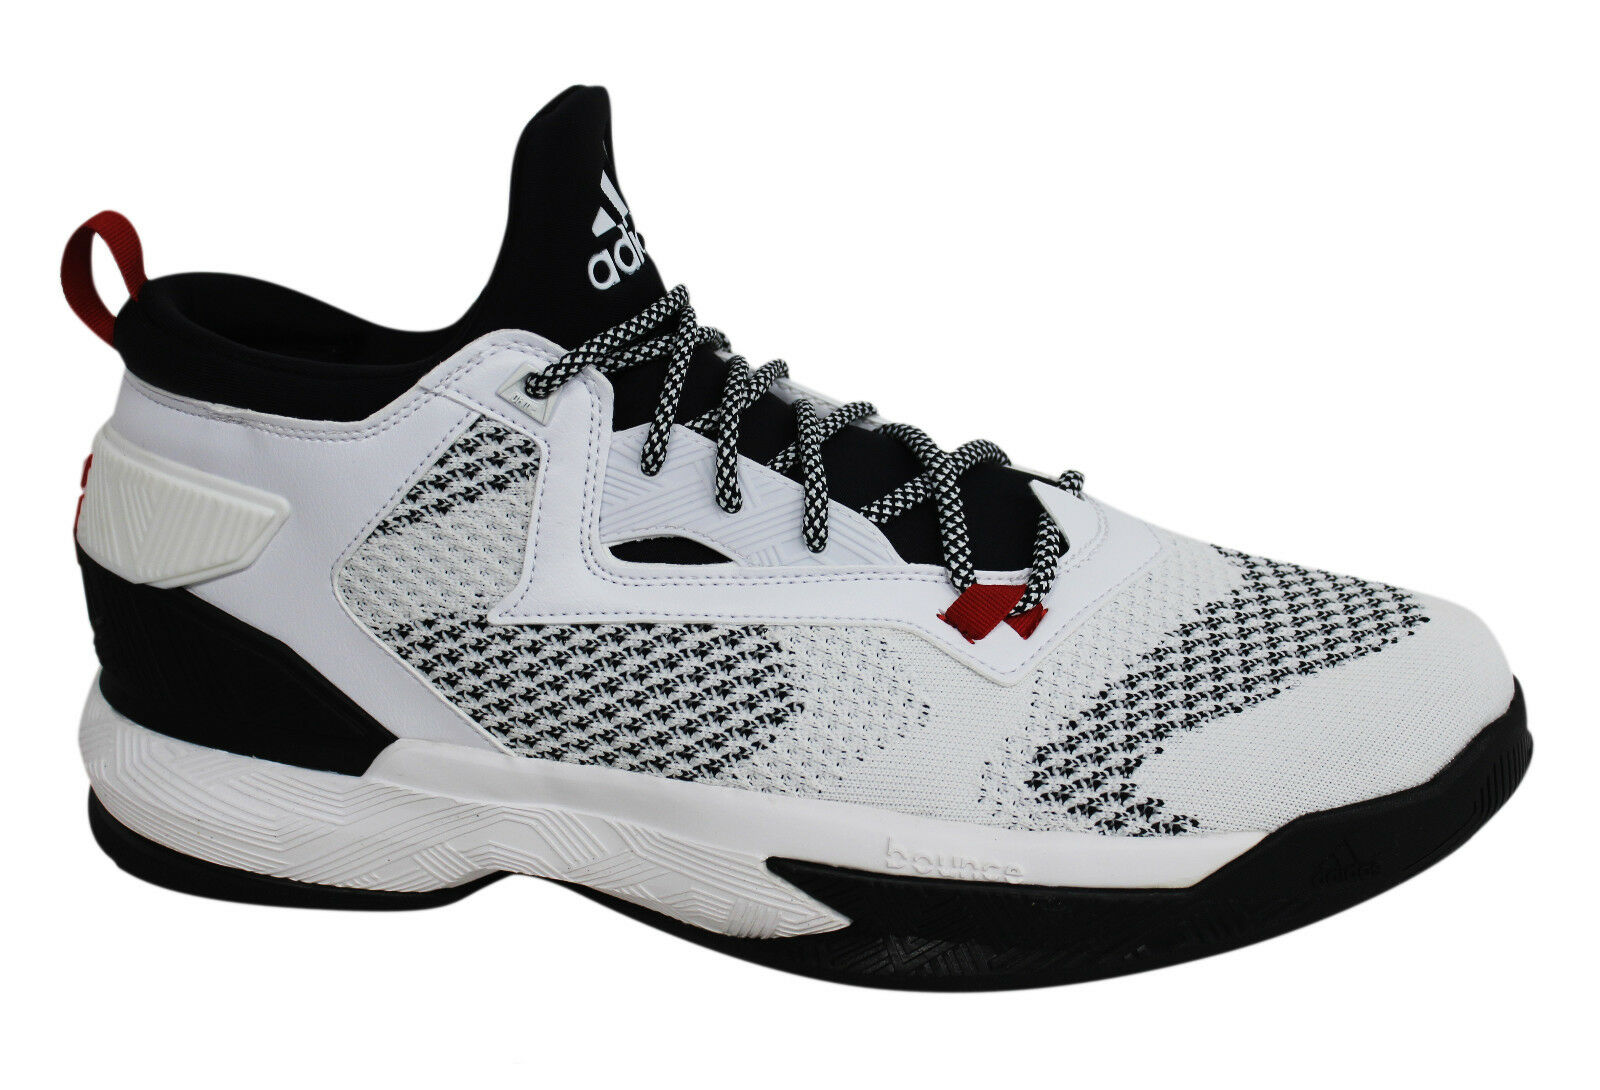 Adidas D Lillard 2 PK ProKnit Lace Up White Mens Basketball Trainers ... ff915b852d35